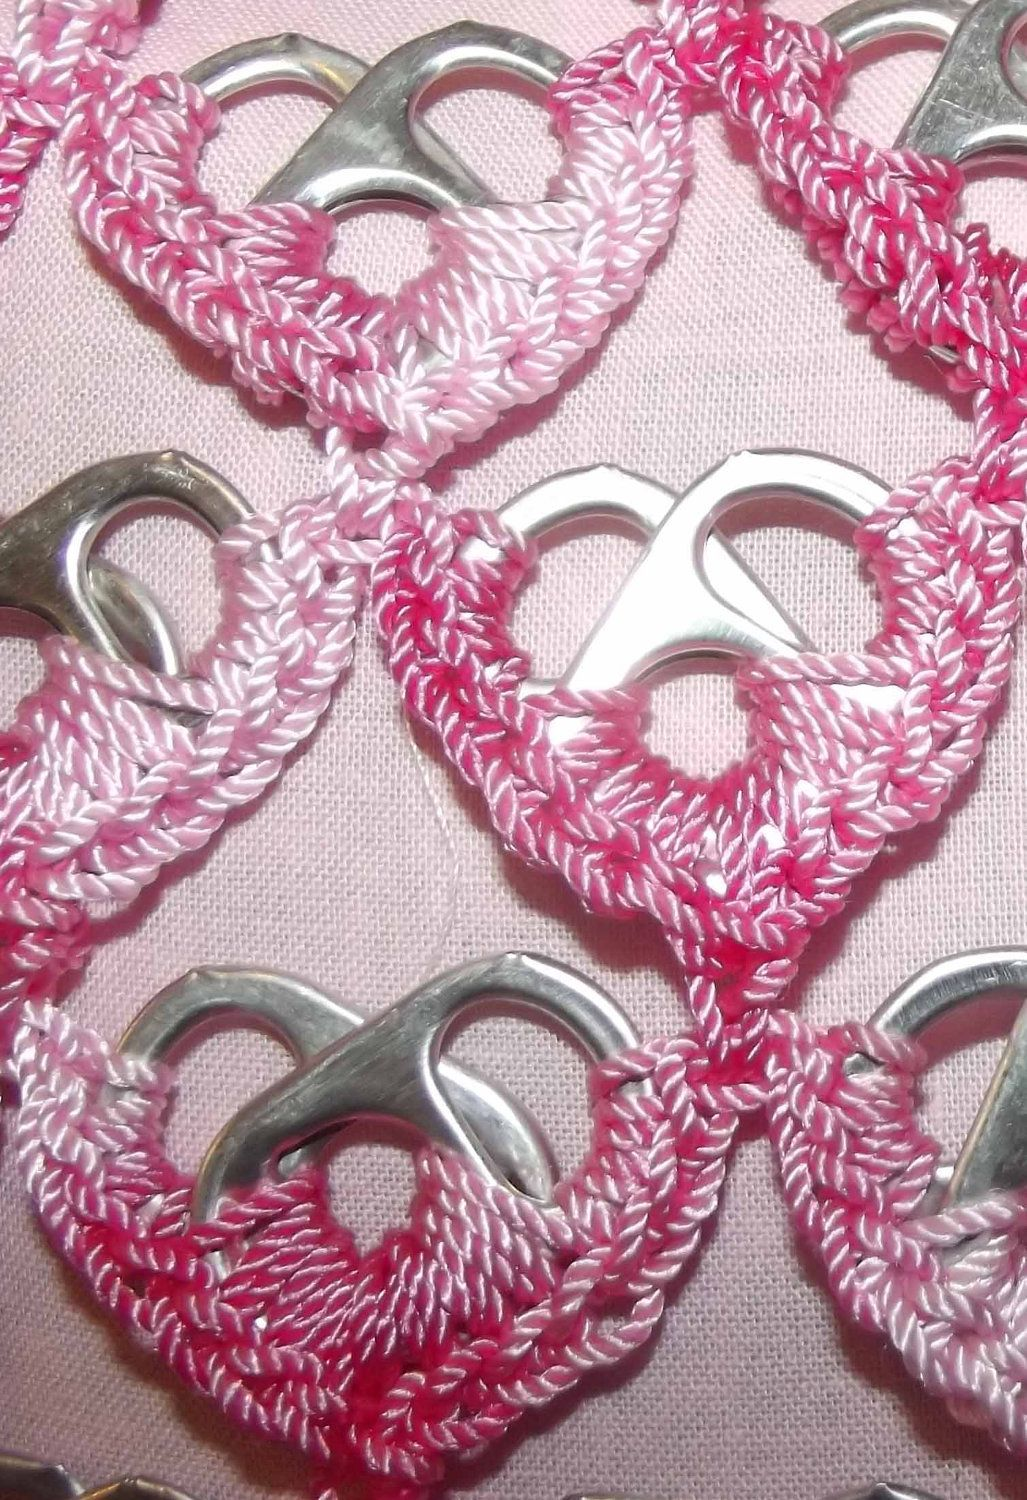 Varigated Pink Heart Upcycled Pop Tab Purse Crocheted Handmade